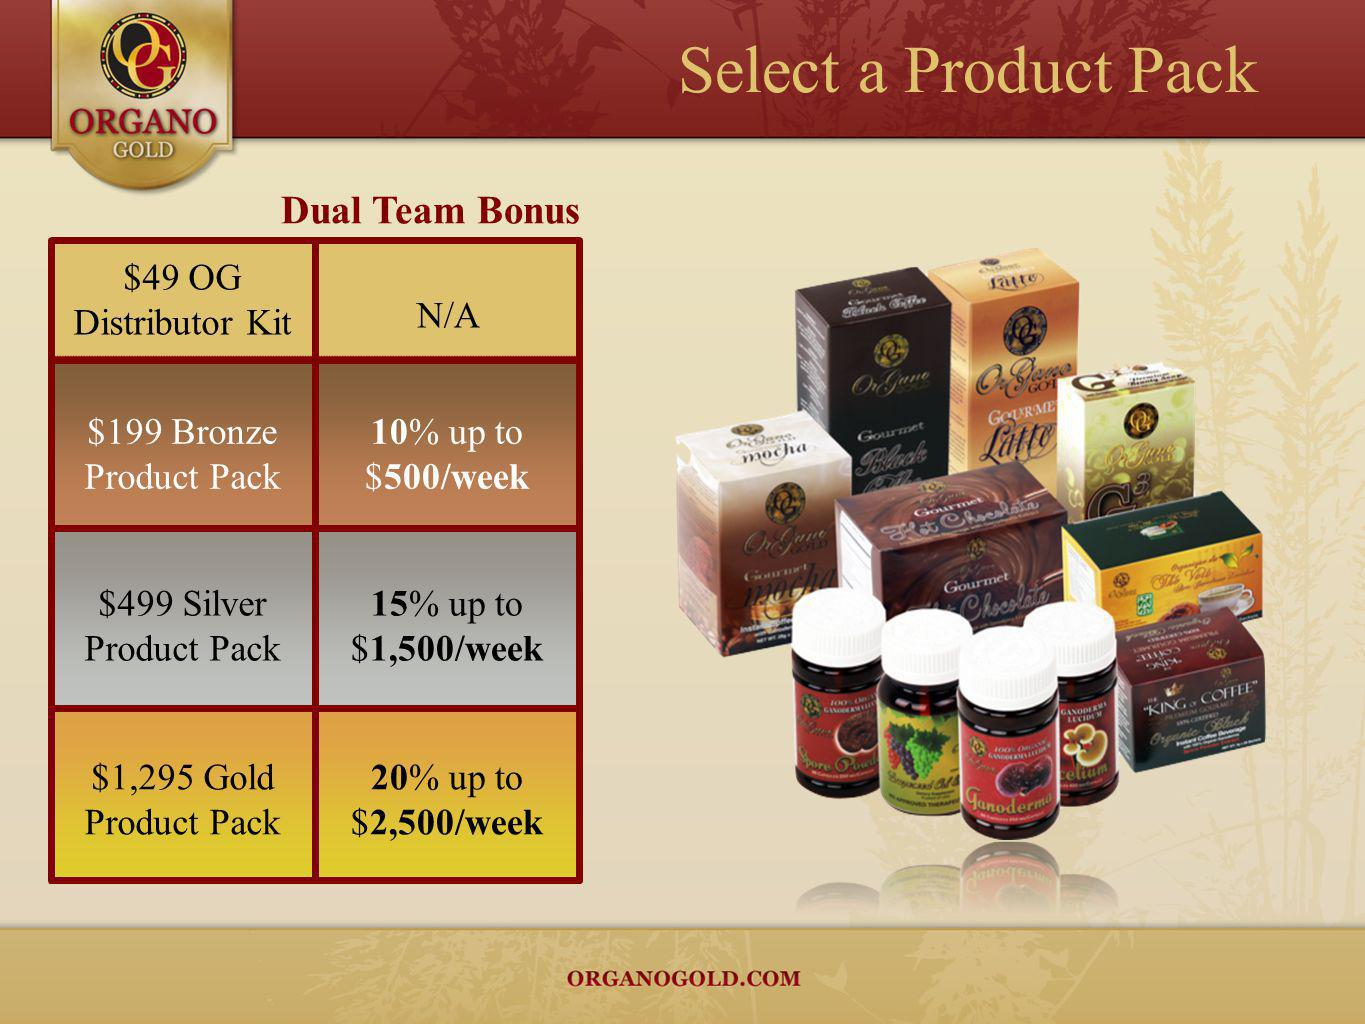 Select a Product Pack Dual Team Bonus $49 OG Distributor Kit N/A